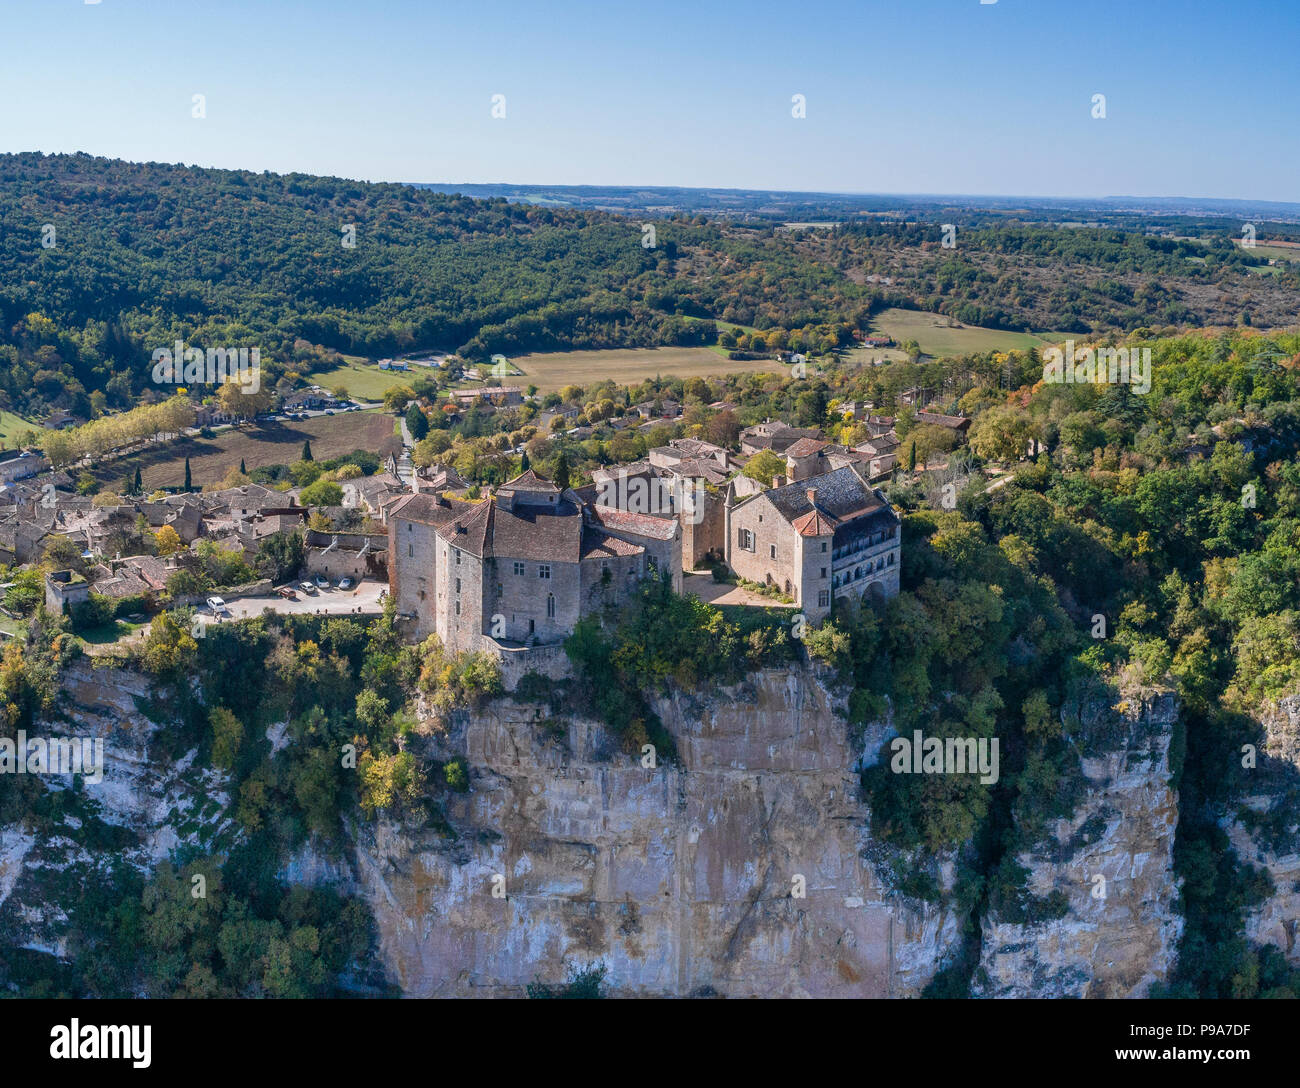 France, Tarn et Garonne, Quercy, Bruniquel, labelled Les Plus Beaux Villages de France (The Most beautiful Villages of France), village built on a roc - Stock Image